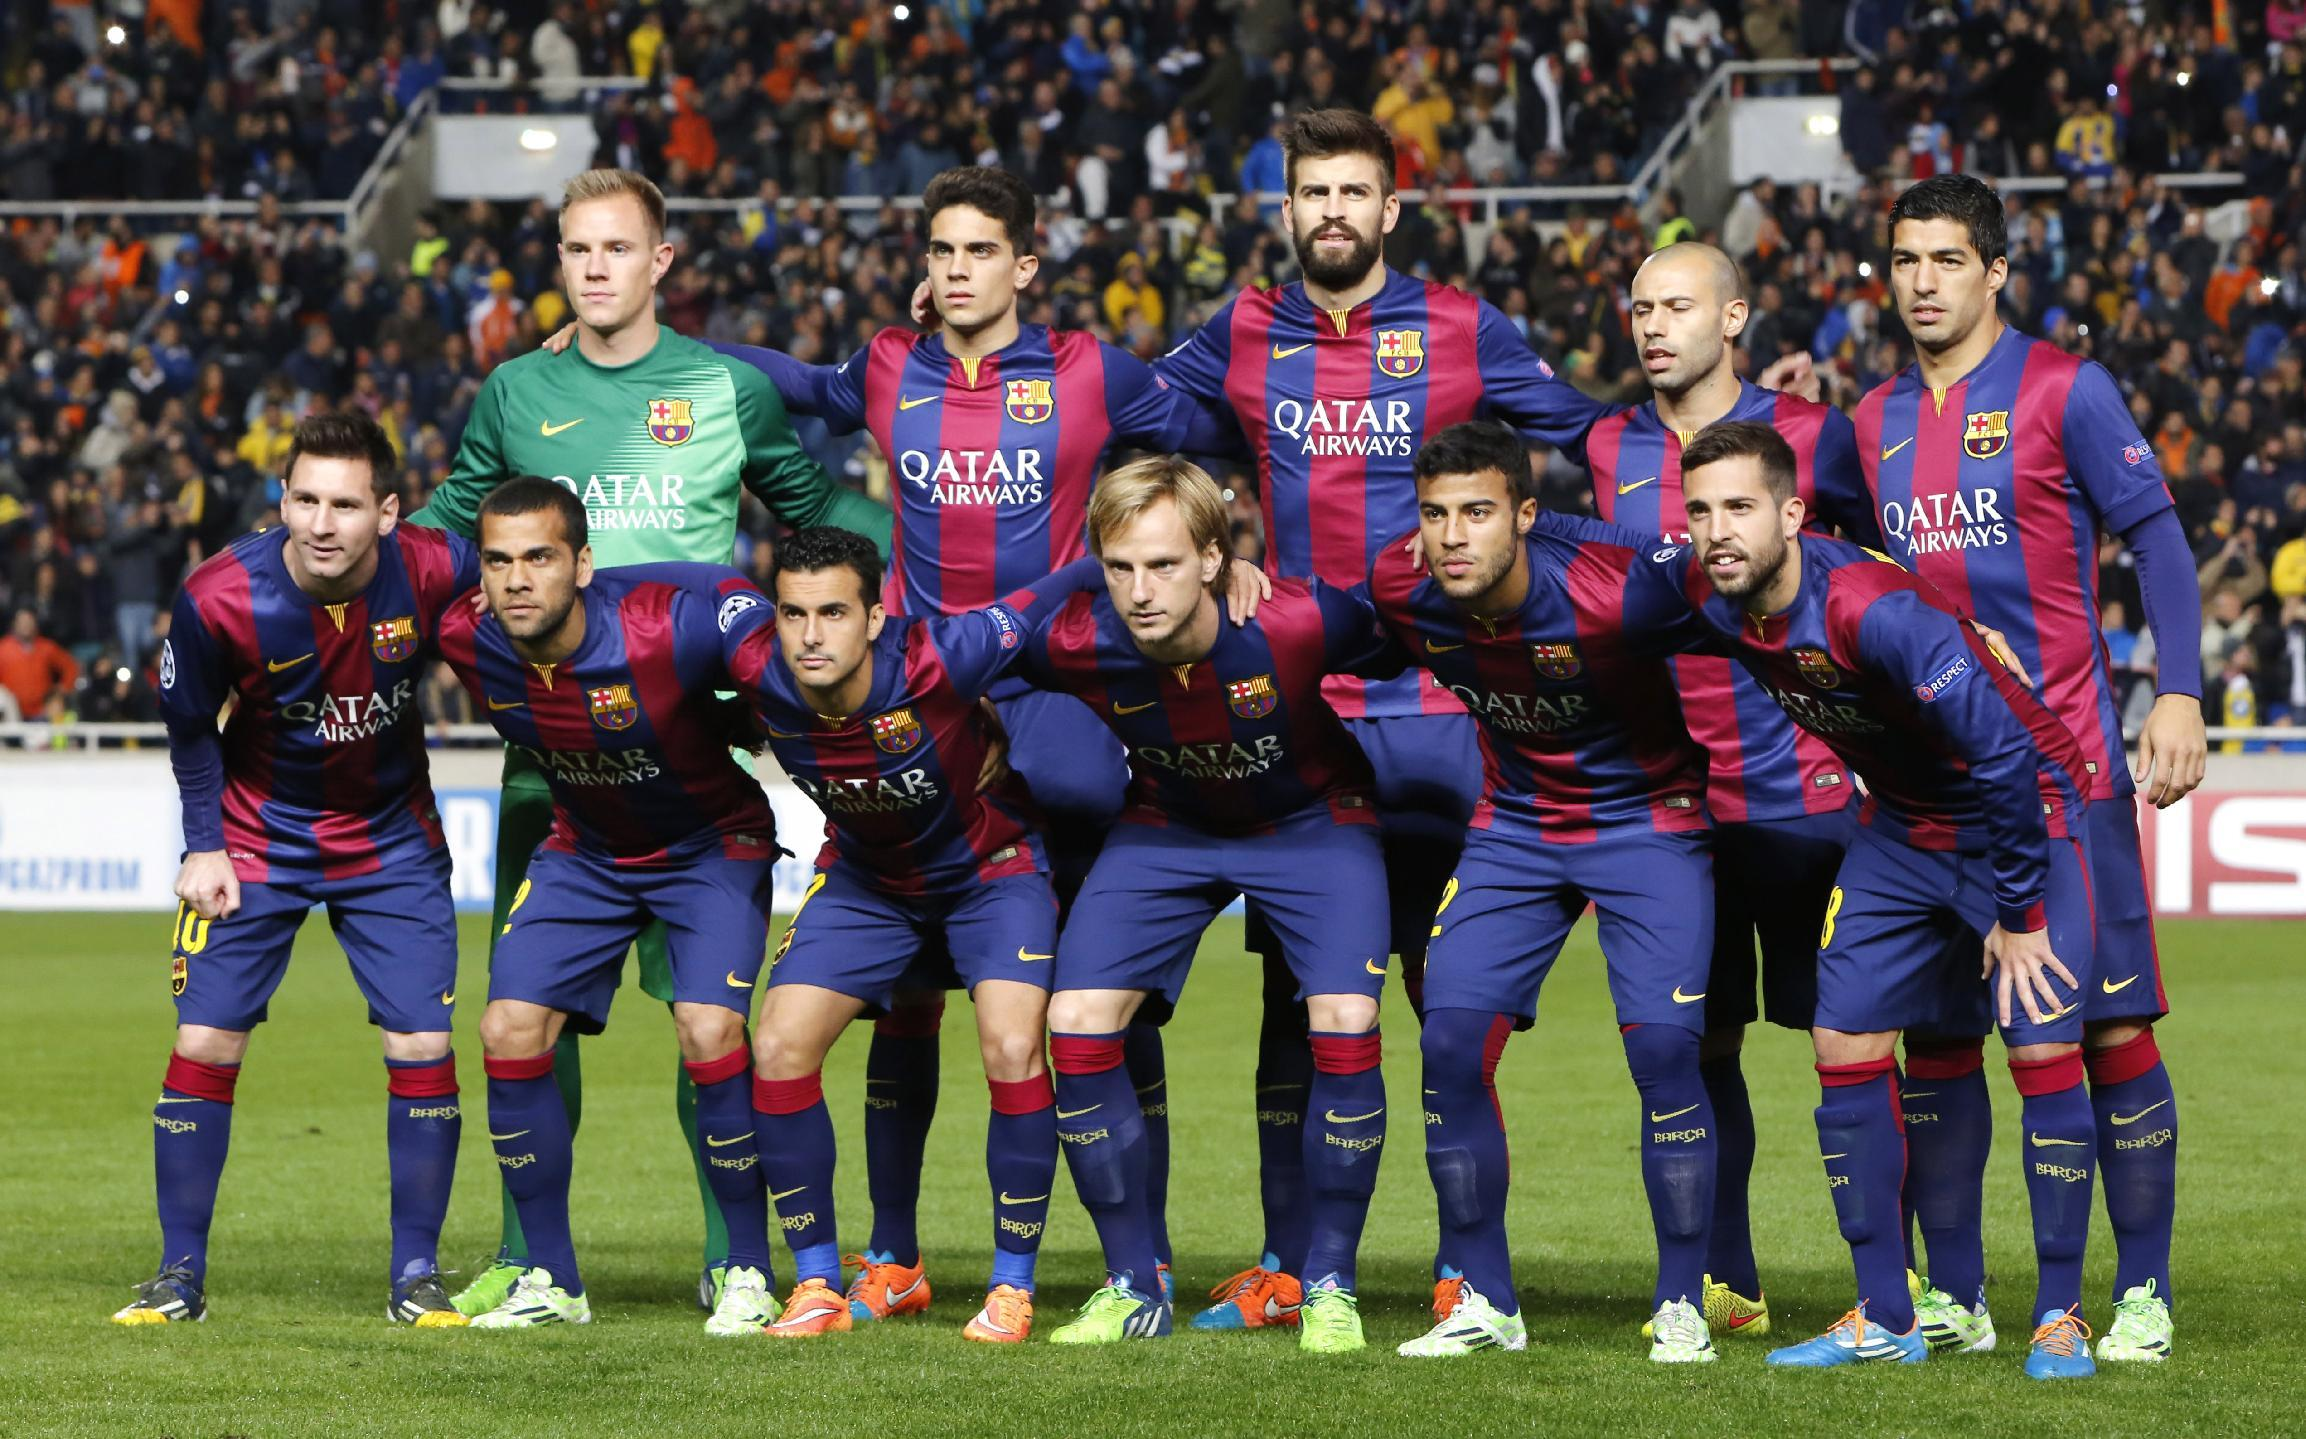 Barcelona Reportedly Cutting Ties With Qatar